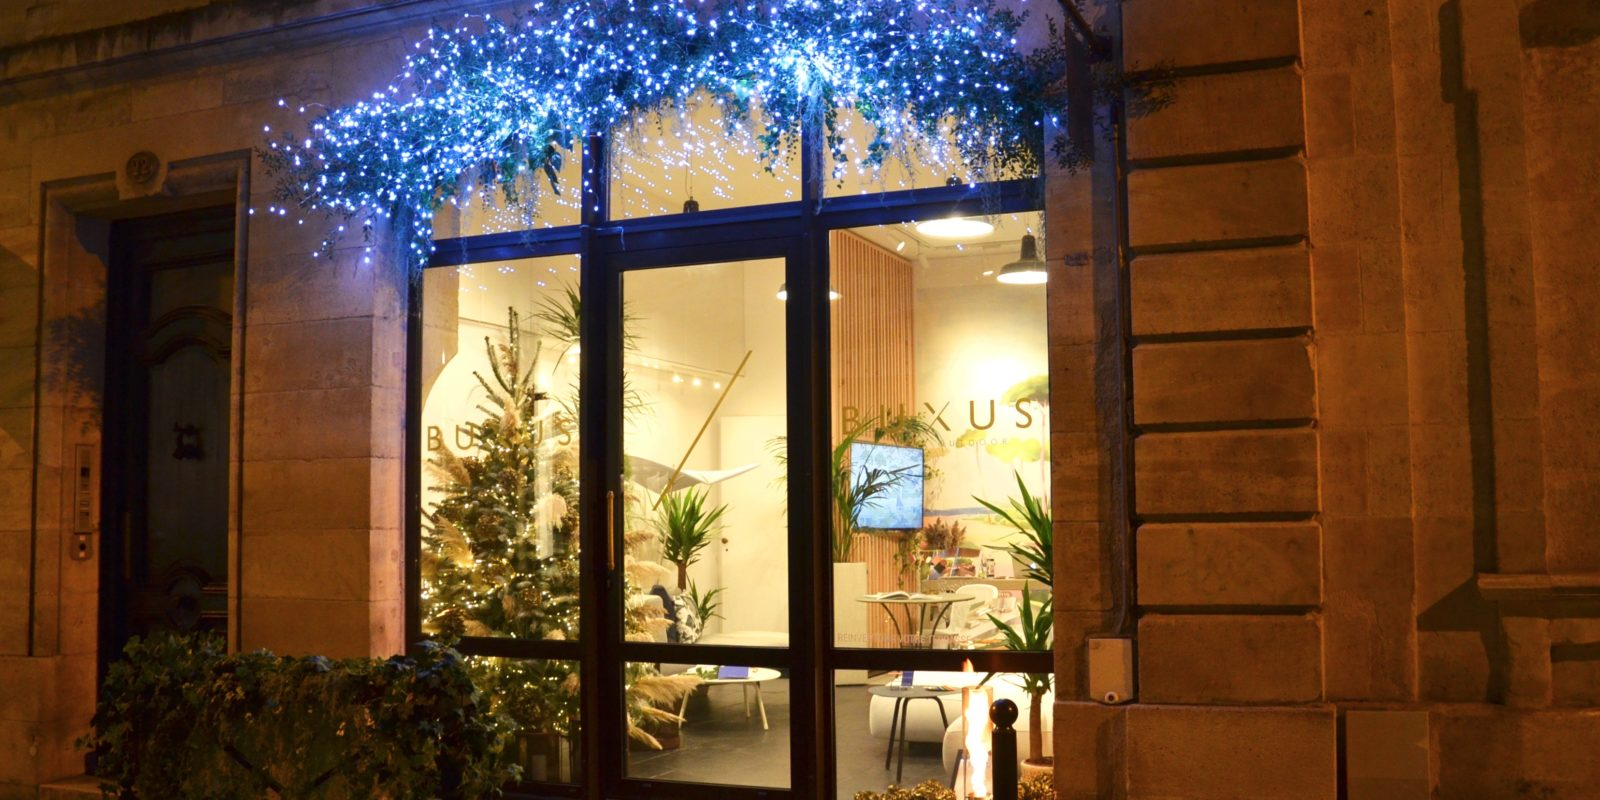 Showroom BUXUS 22 Rue Mably Bordeaux